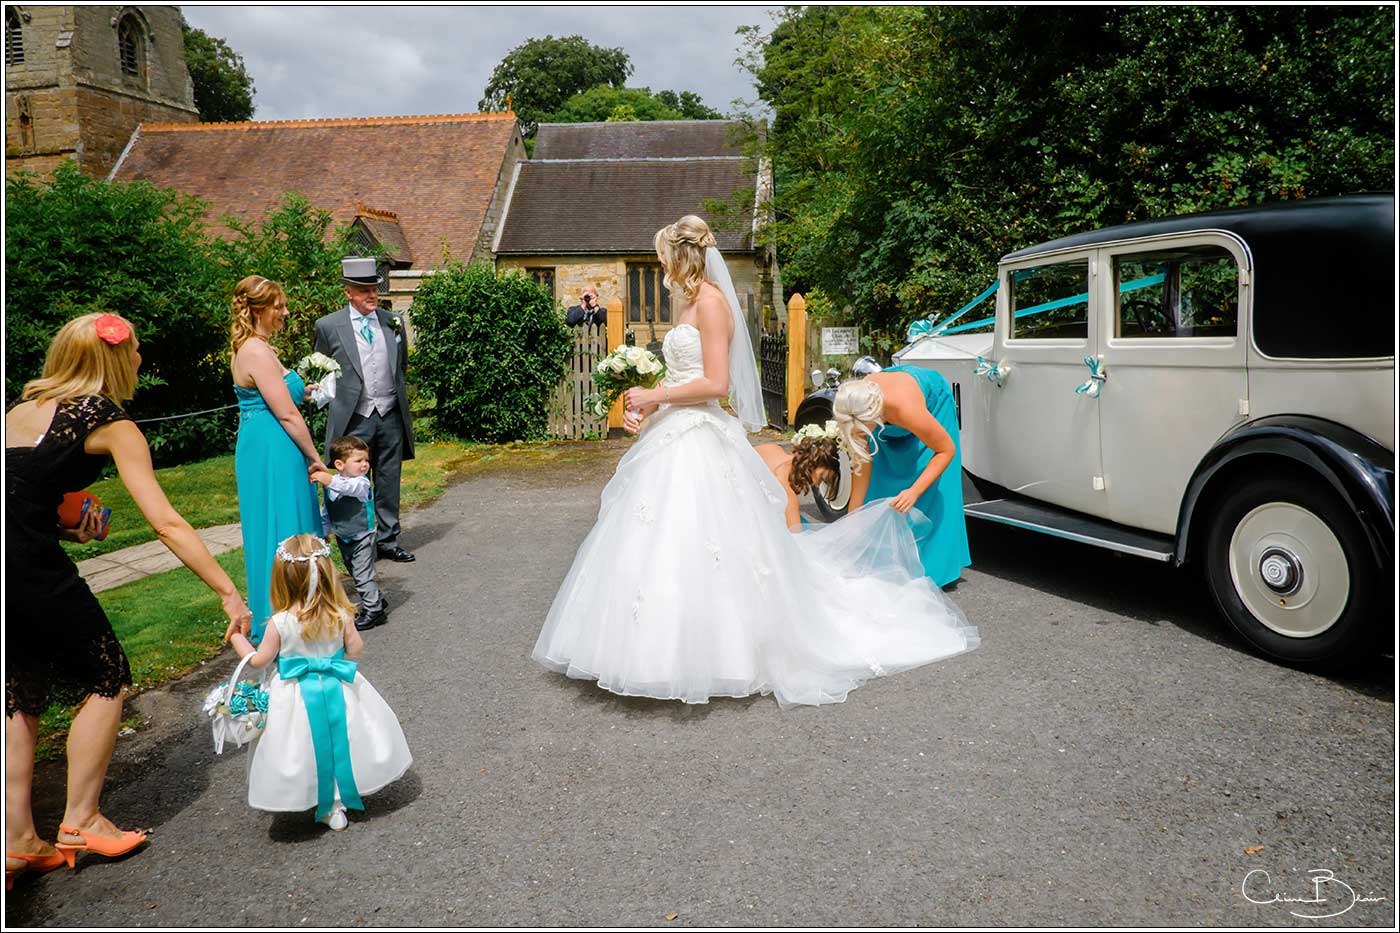 Bride getting out of car-by Hampton manor wedding photographer Clive Blair Photography